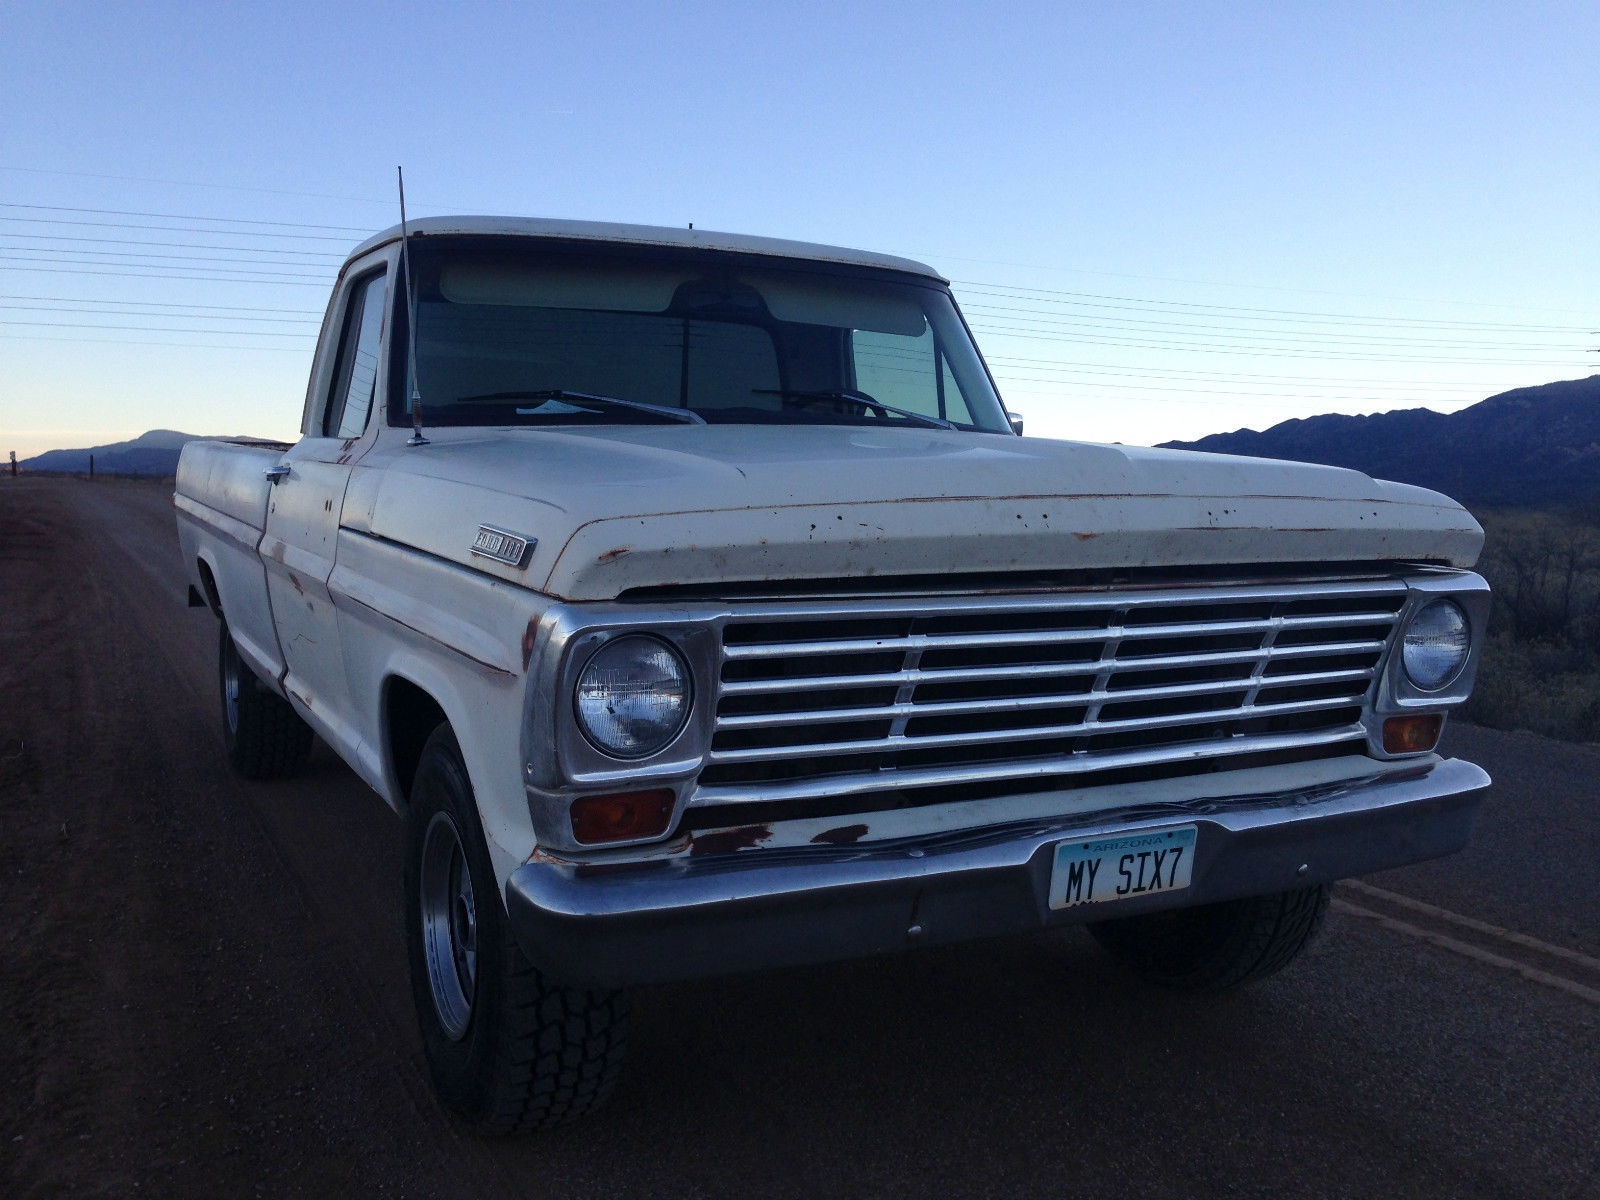 1967 Ford F 100 F100 Shop Truck Patina For Sale In Cottonwood 1964 F250 Camper Special Arizona United States